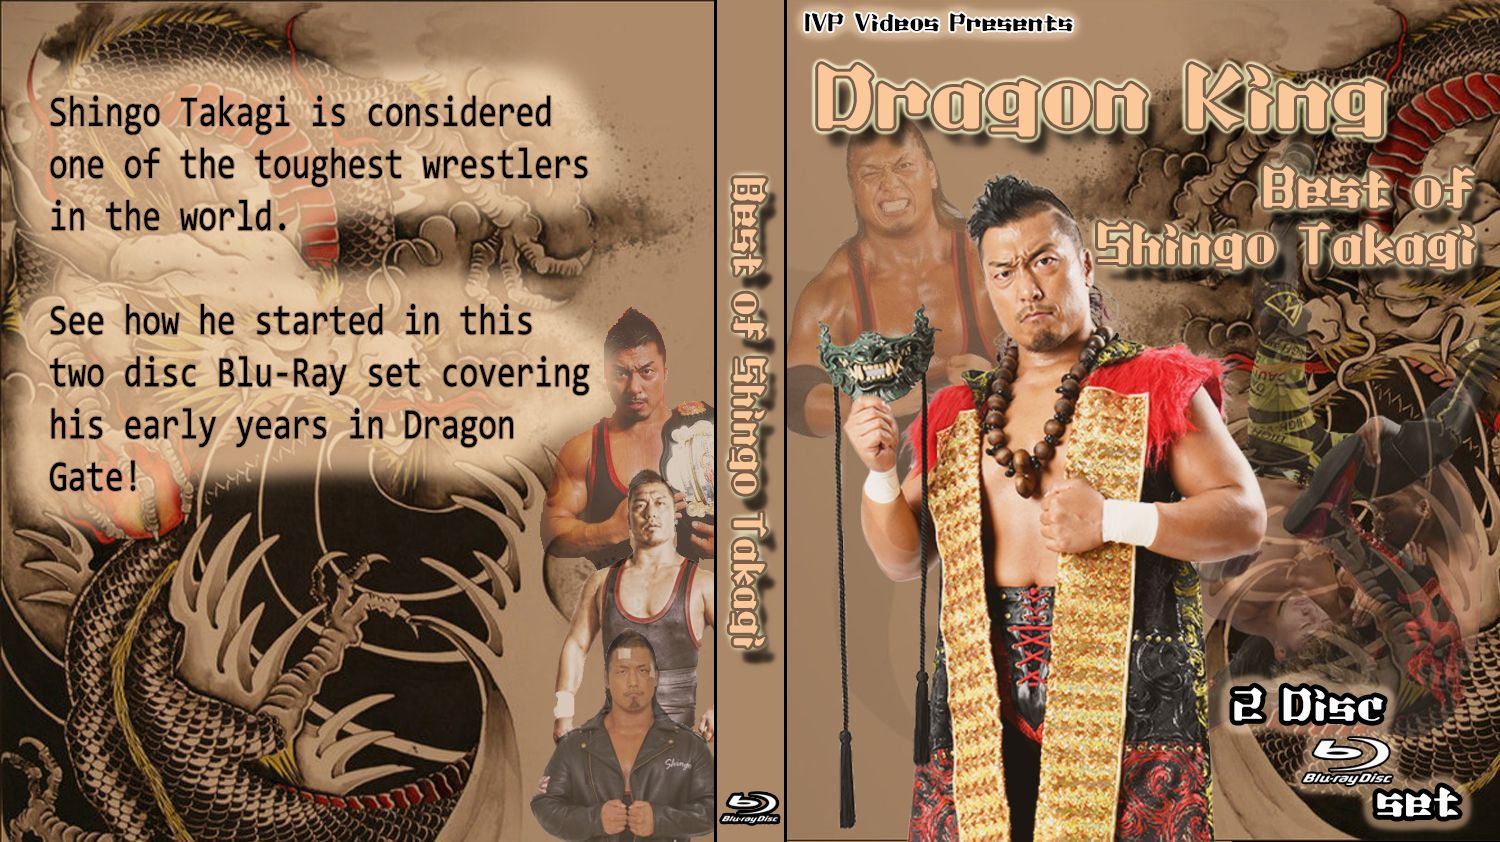 Best of Shingo (2 Disc Blu-Ray with Cover Art)